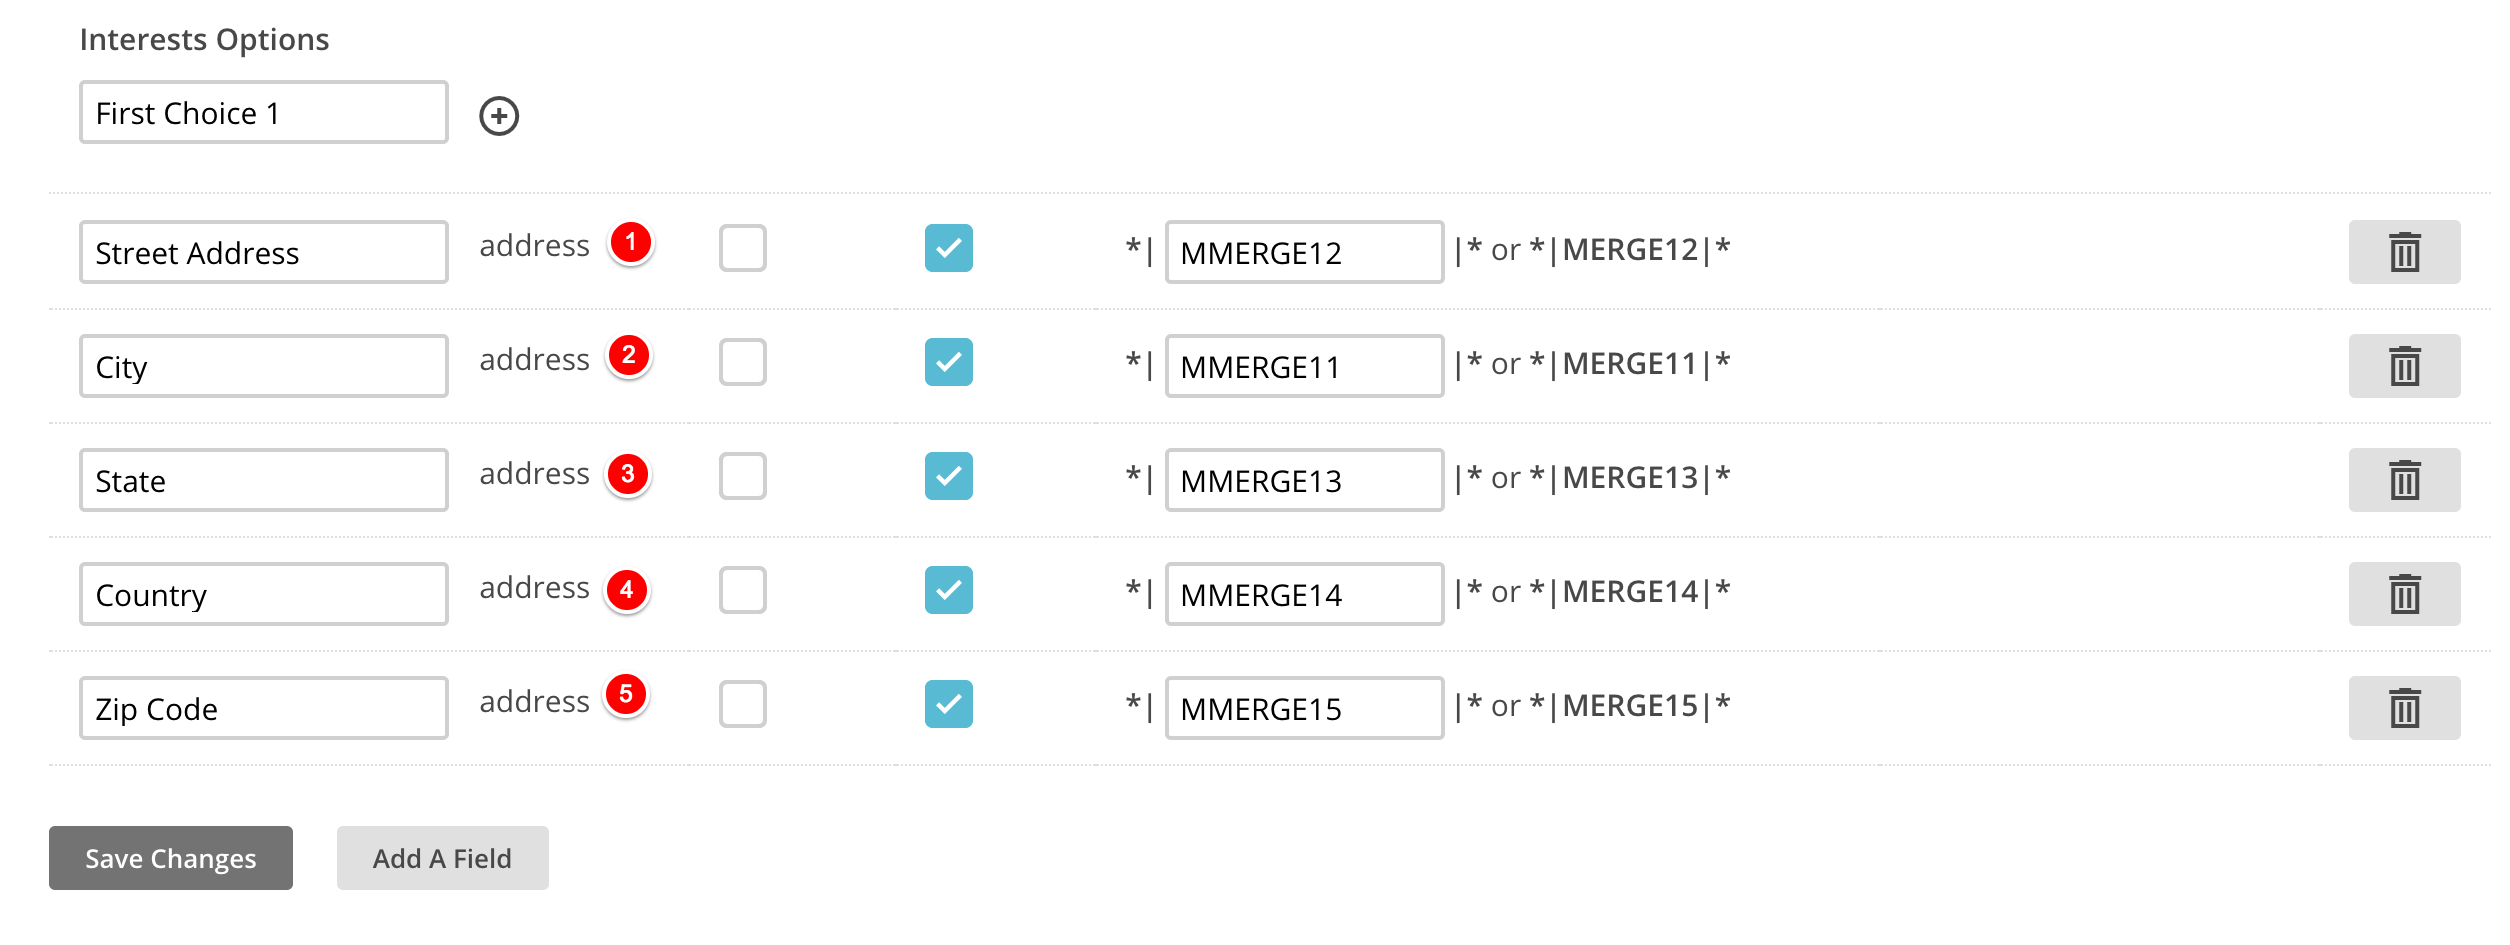 List_Fields_and___MERGE___Tags_for_Unit_Test___MailChimp__1_.png